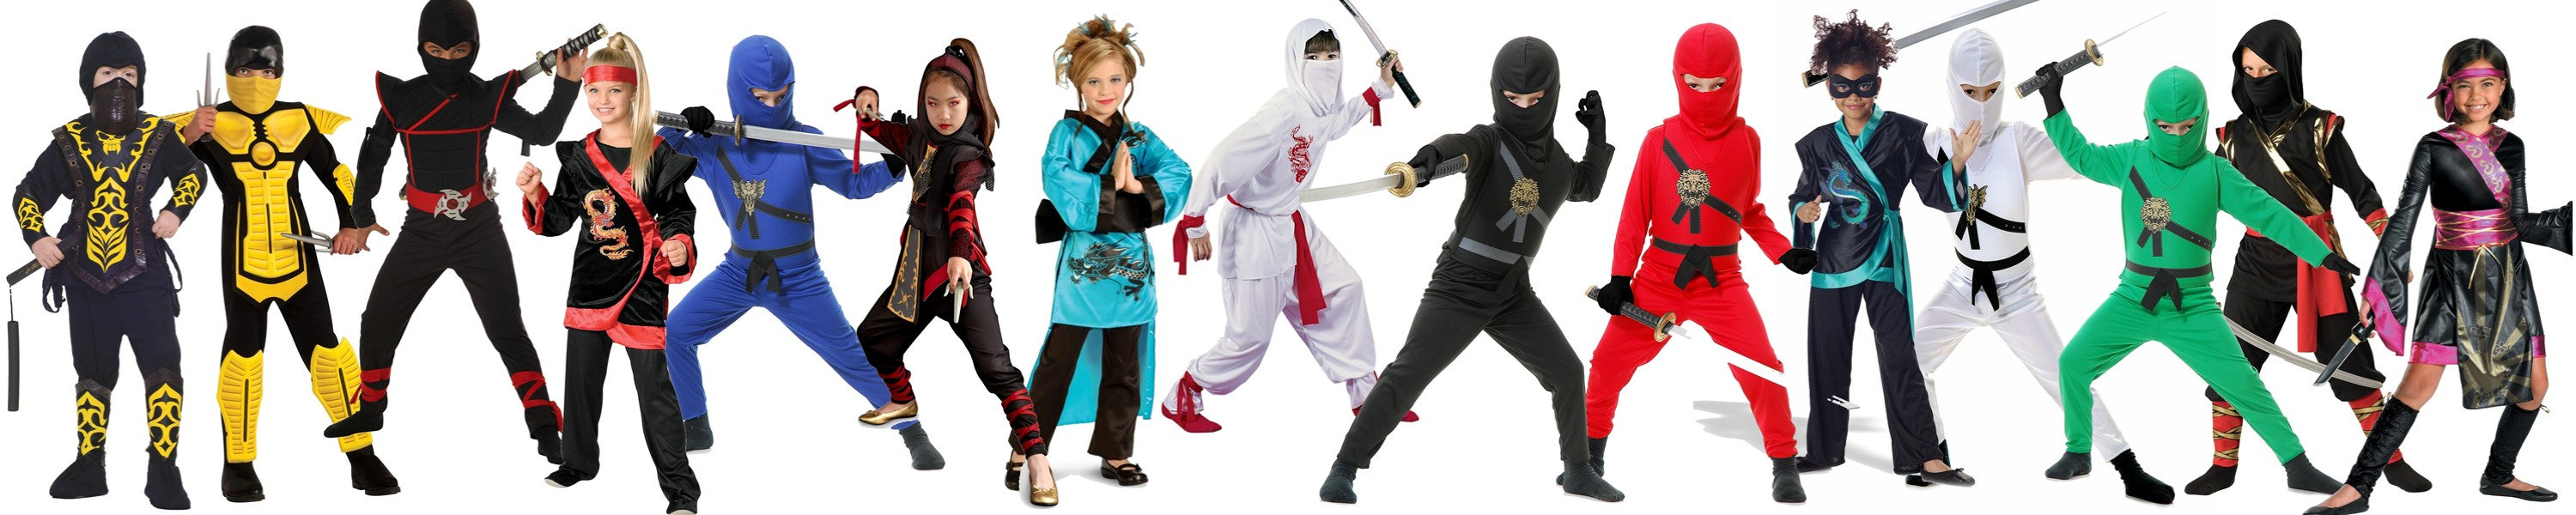 Martial Arts Halloween - Serving the Martial Arts community